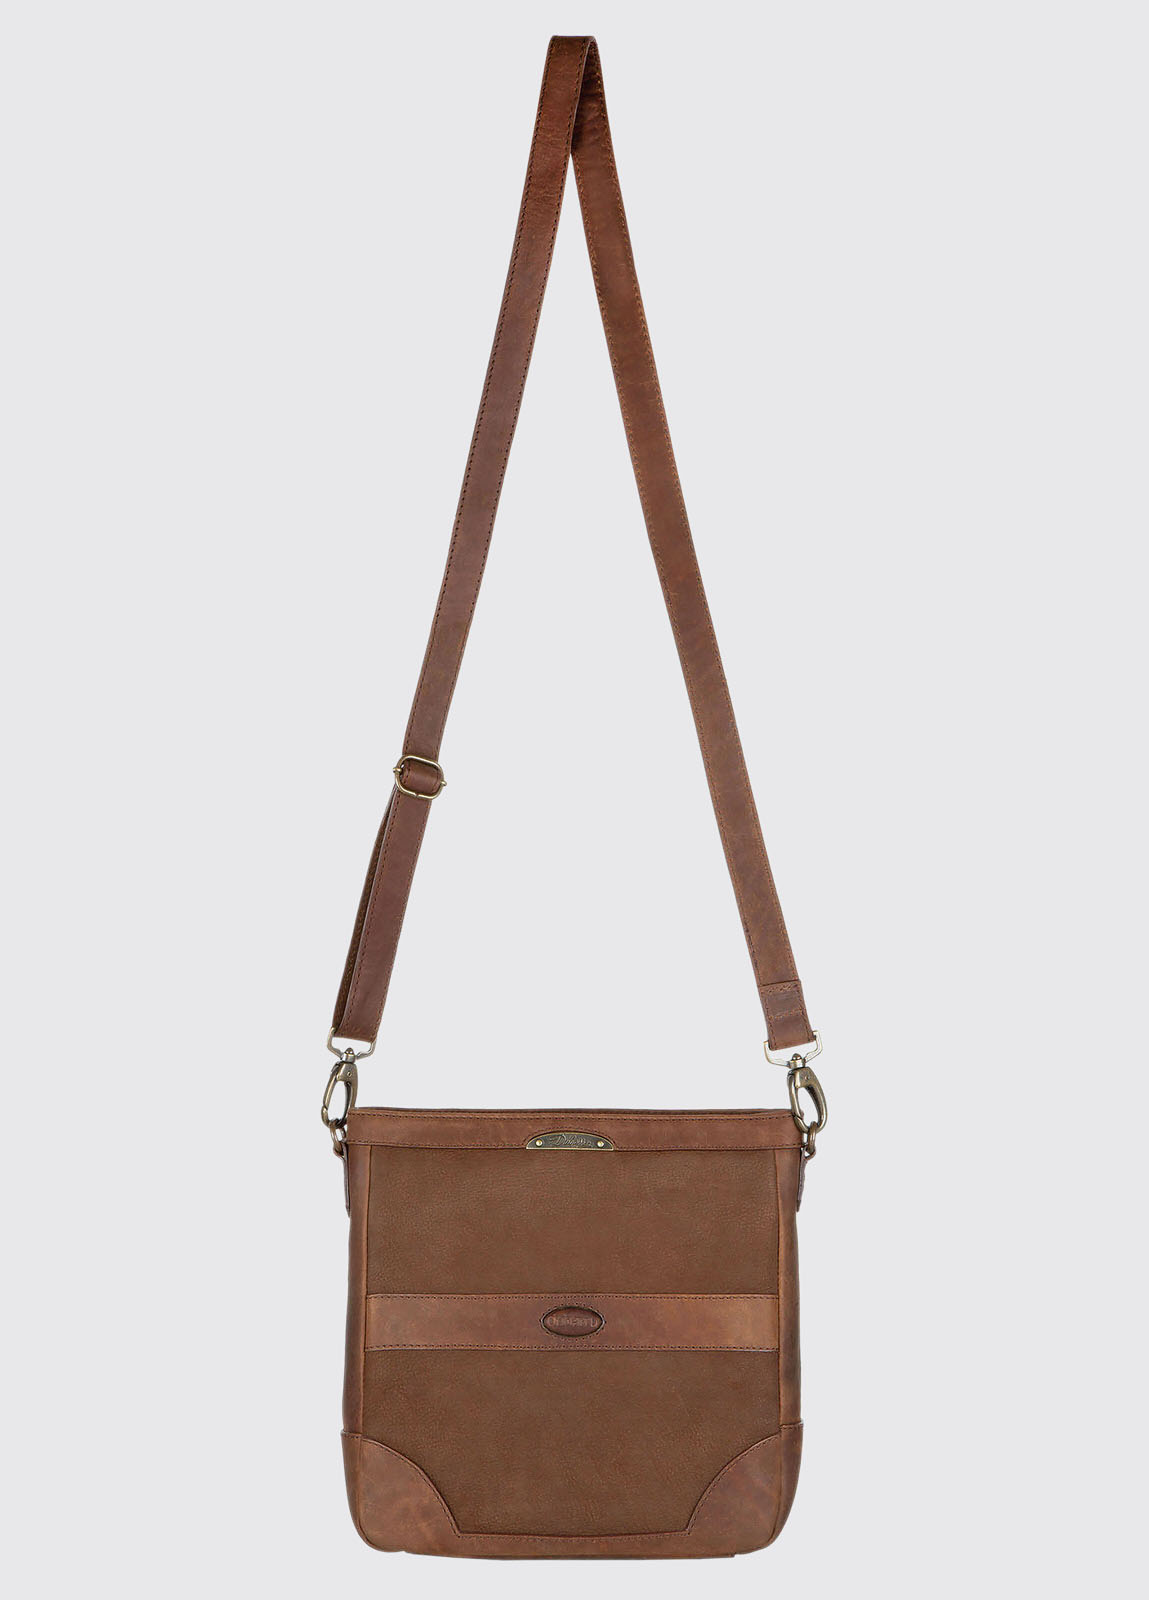 Ardmore Cross Body Bag - Walnut